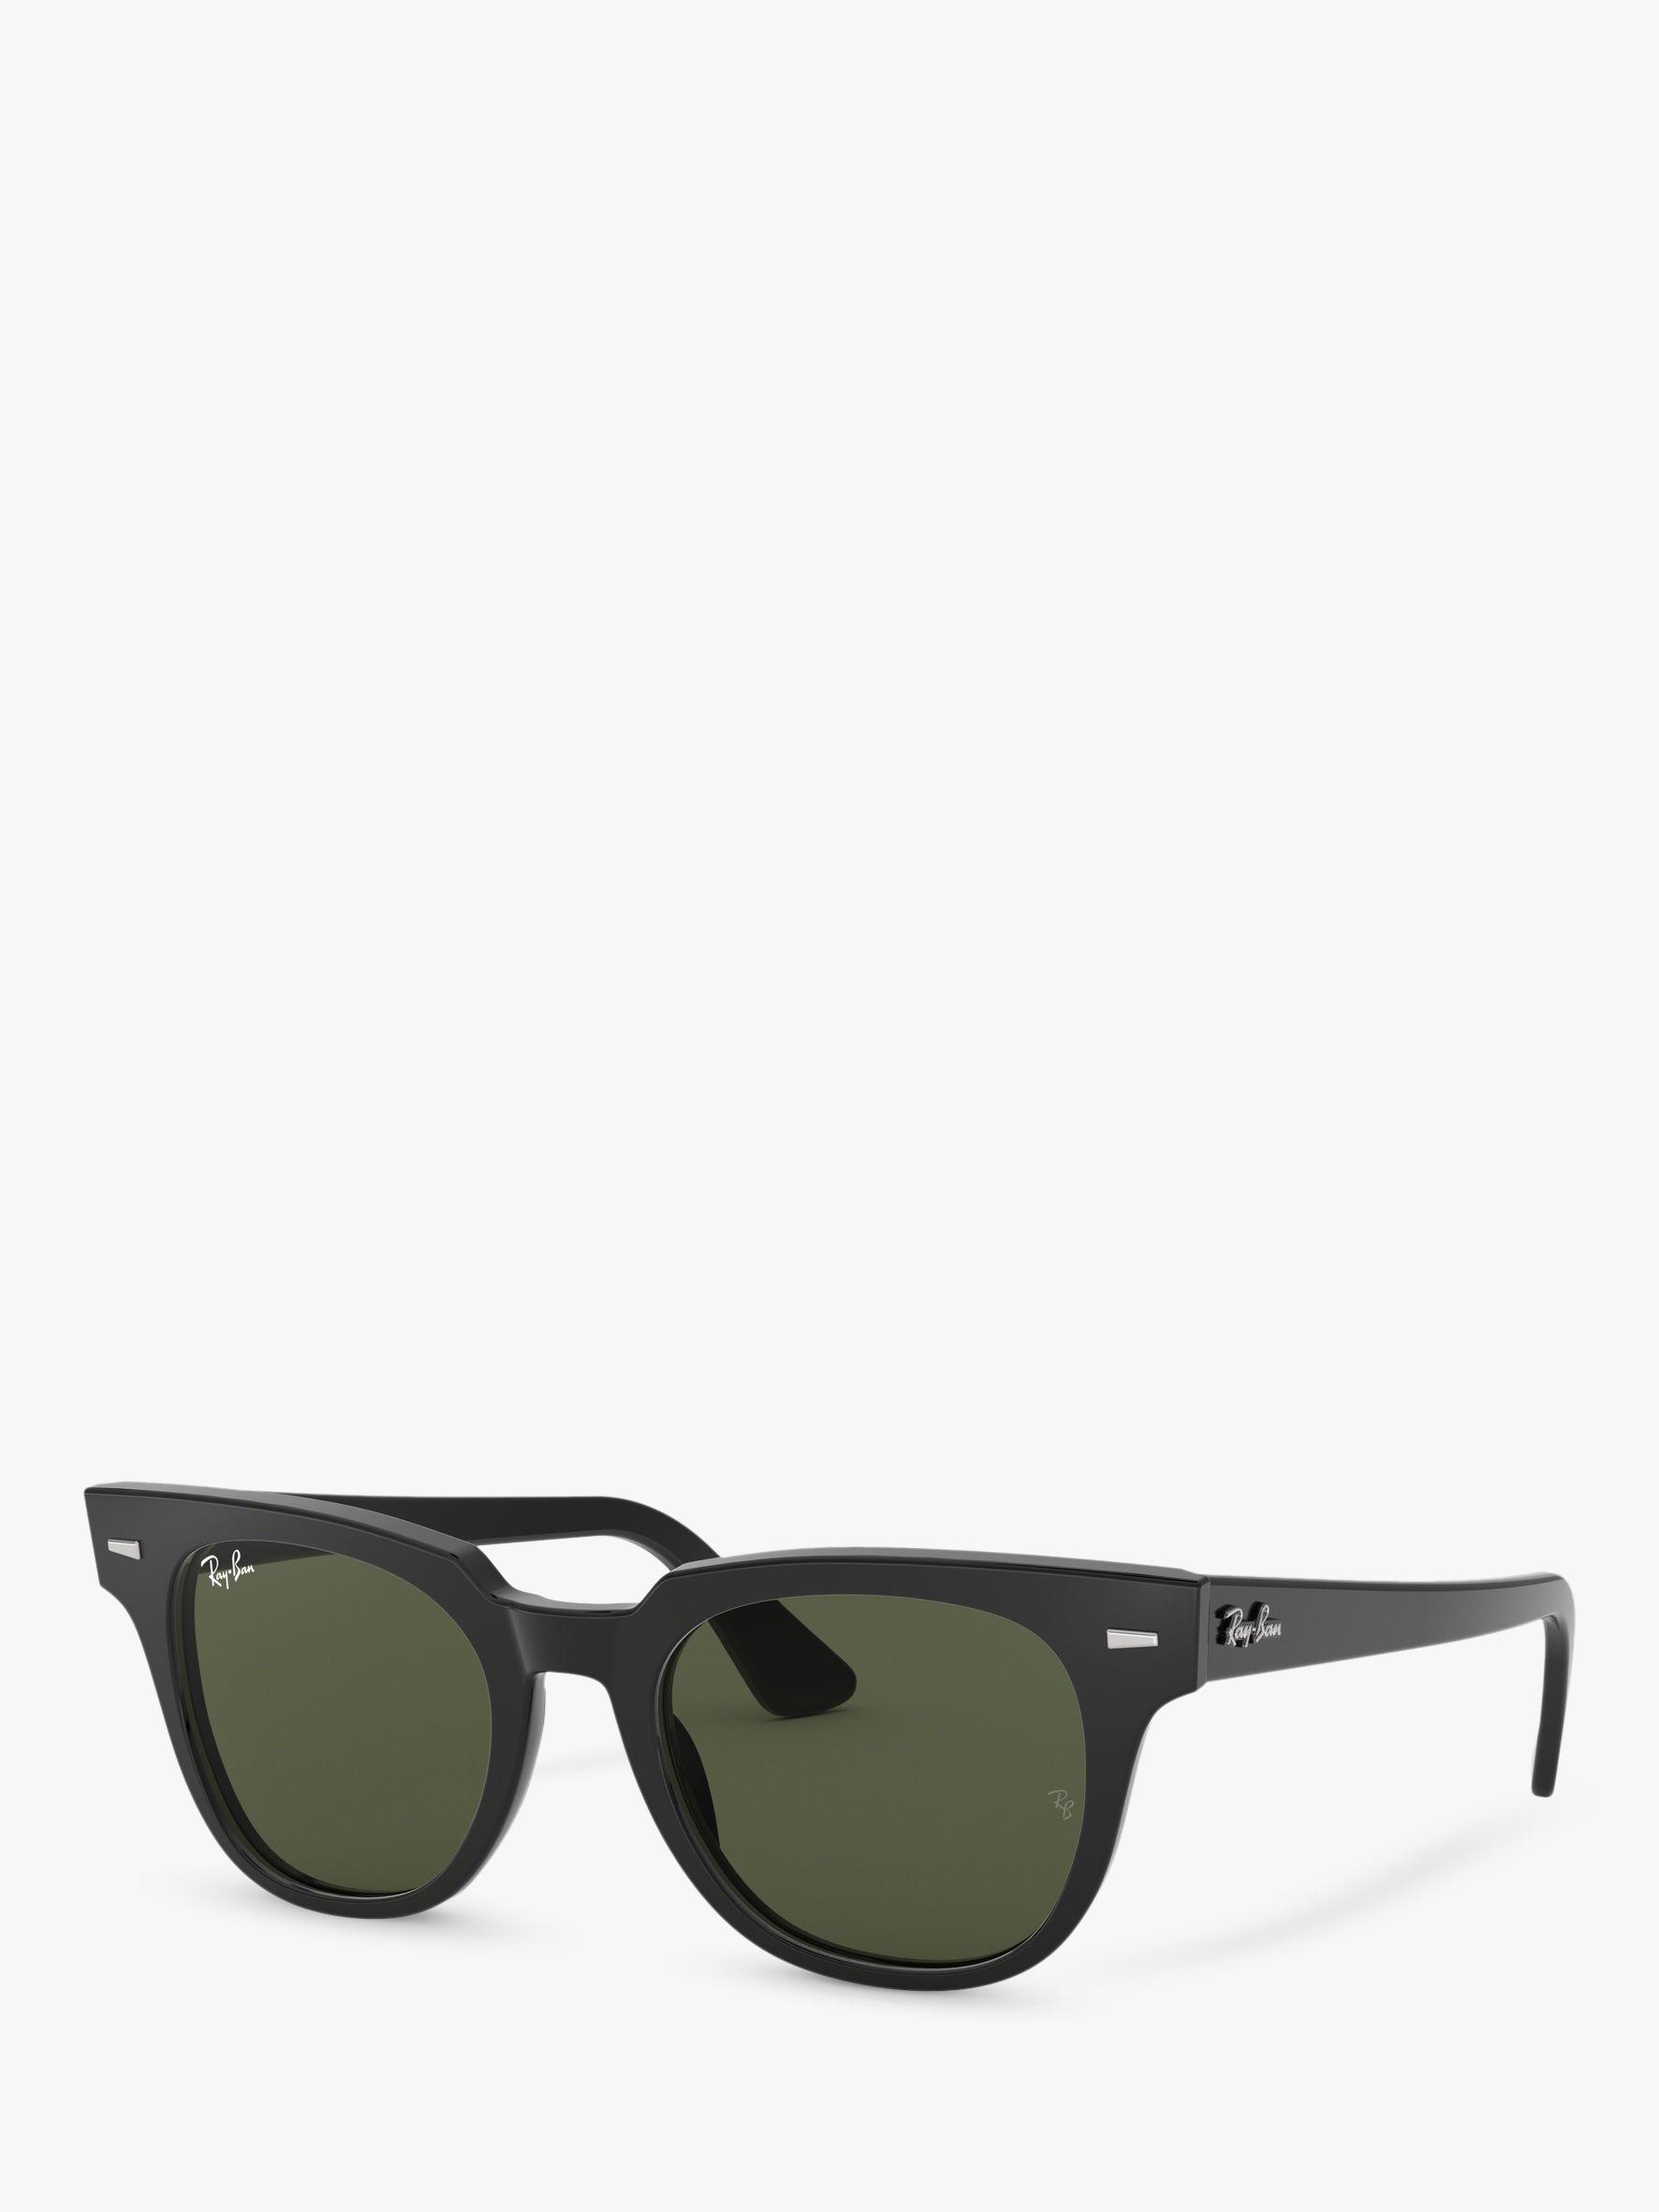 877a0bdcdb Ray-Ban Rb2168 Unisex Square Sunglasses in Black for Men - Lyst